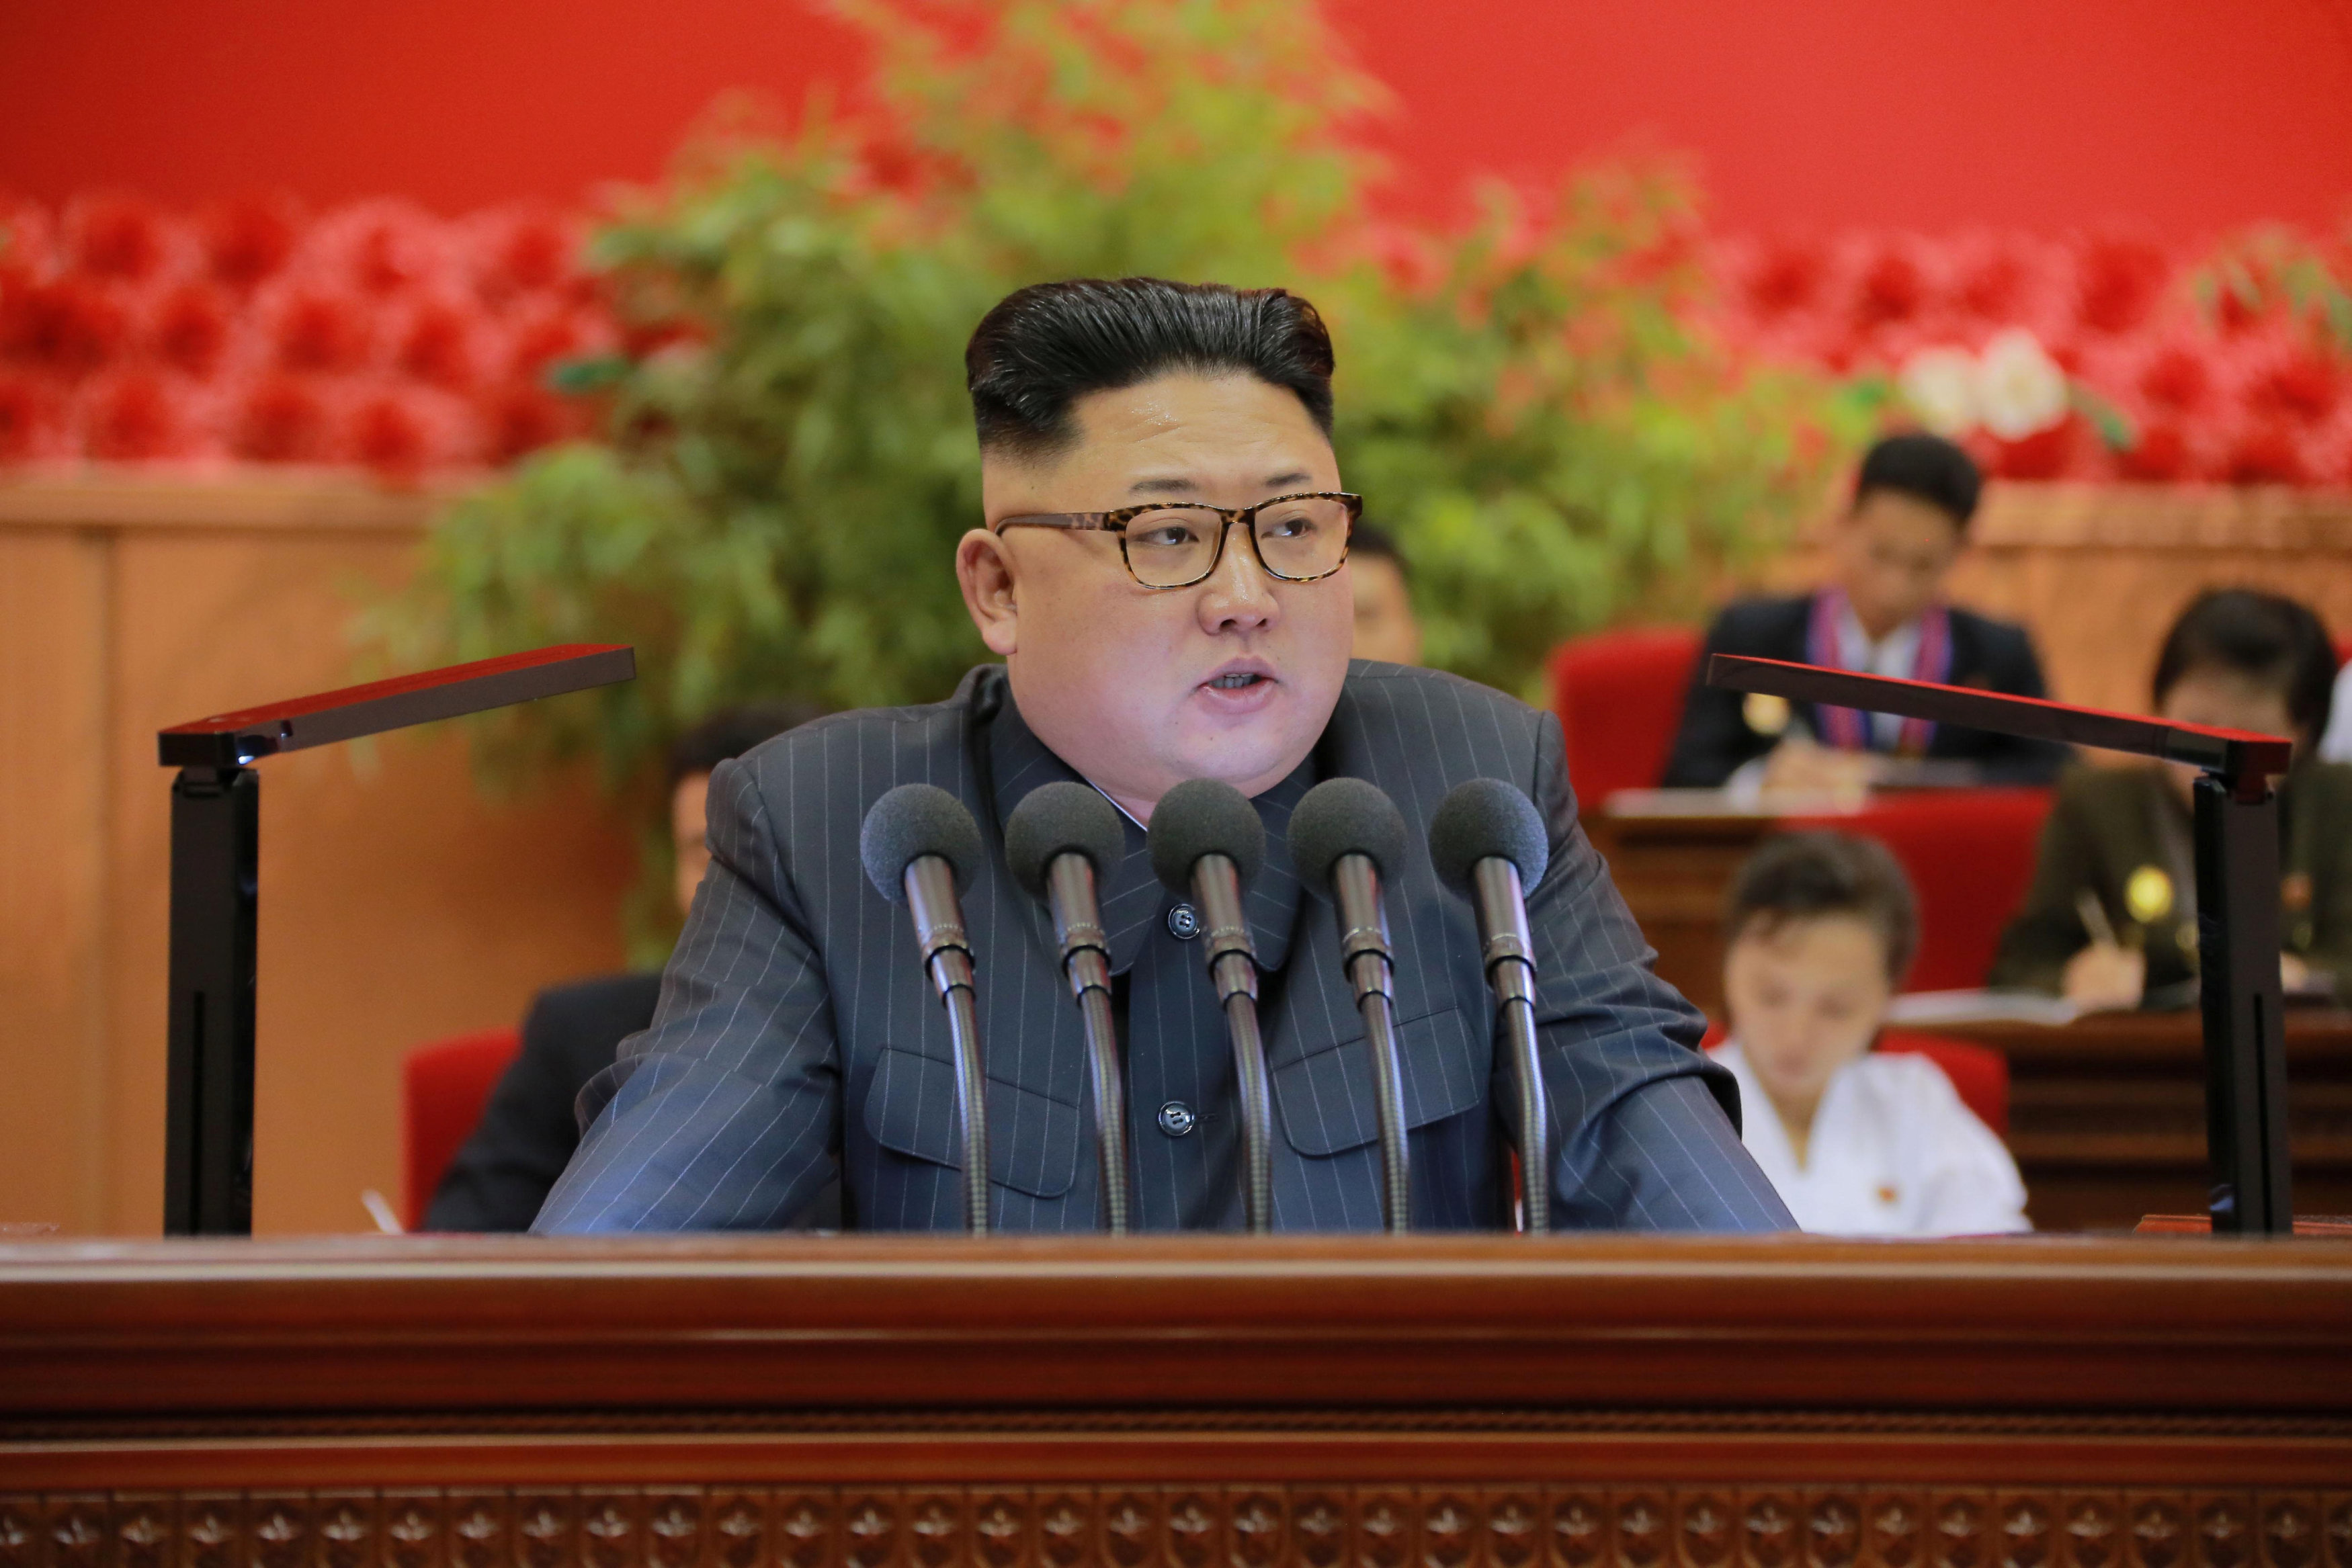 North Korean leader Kim Jong Un addresses the Ninth Congress of the Kim Il Sung Socialist Youth League in this undated photo released Monday. | REUTERS